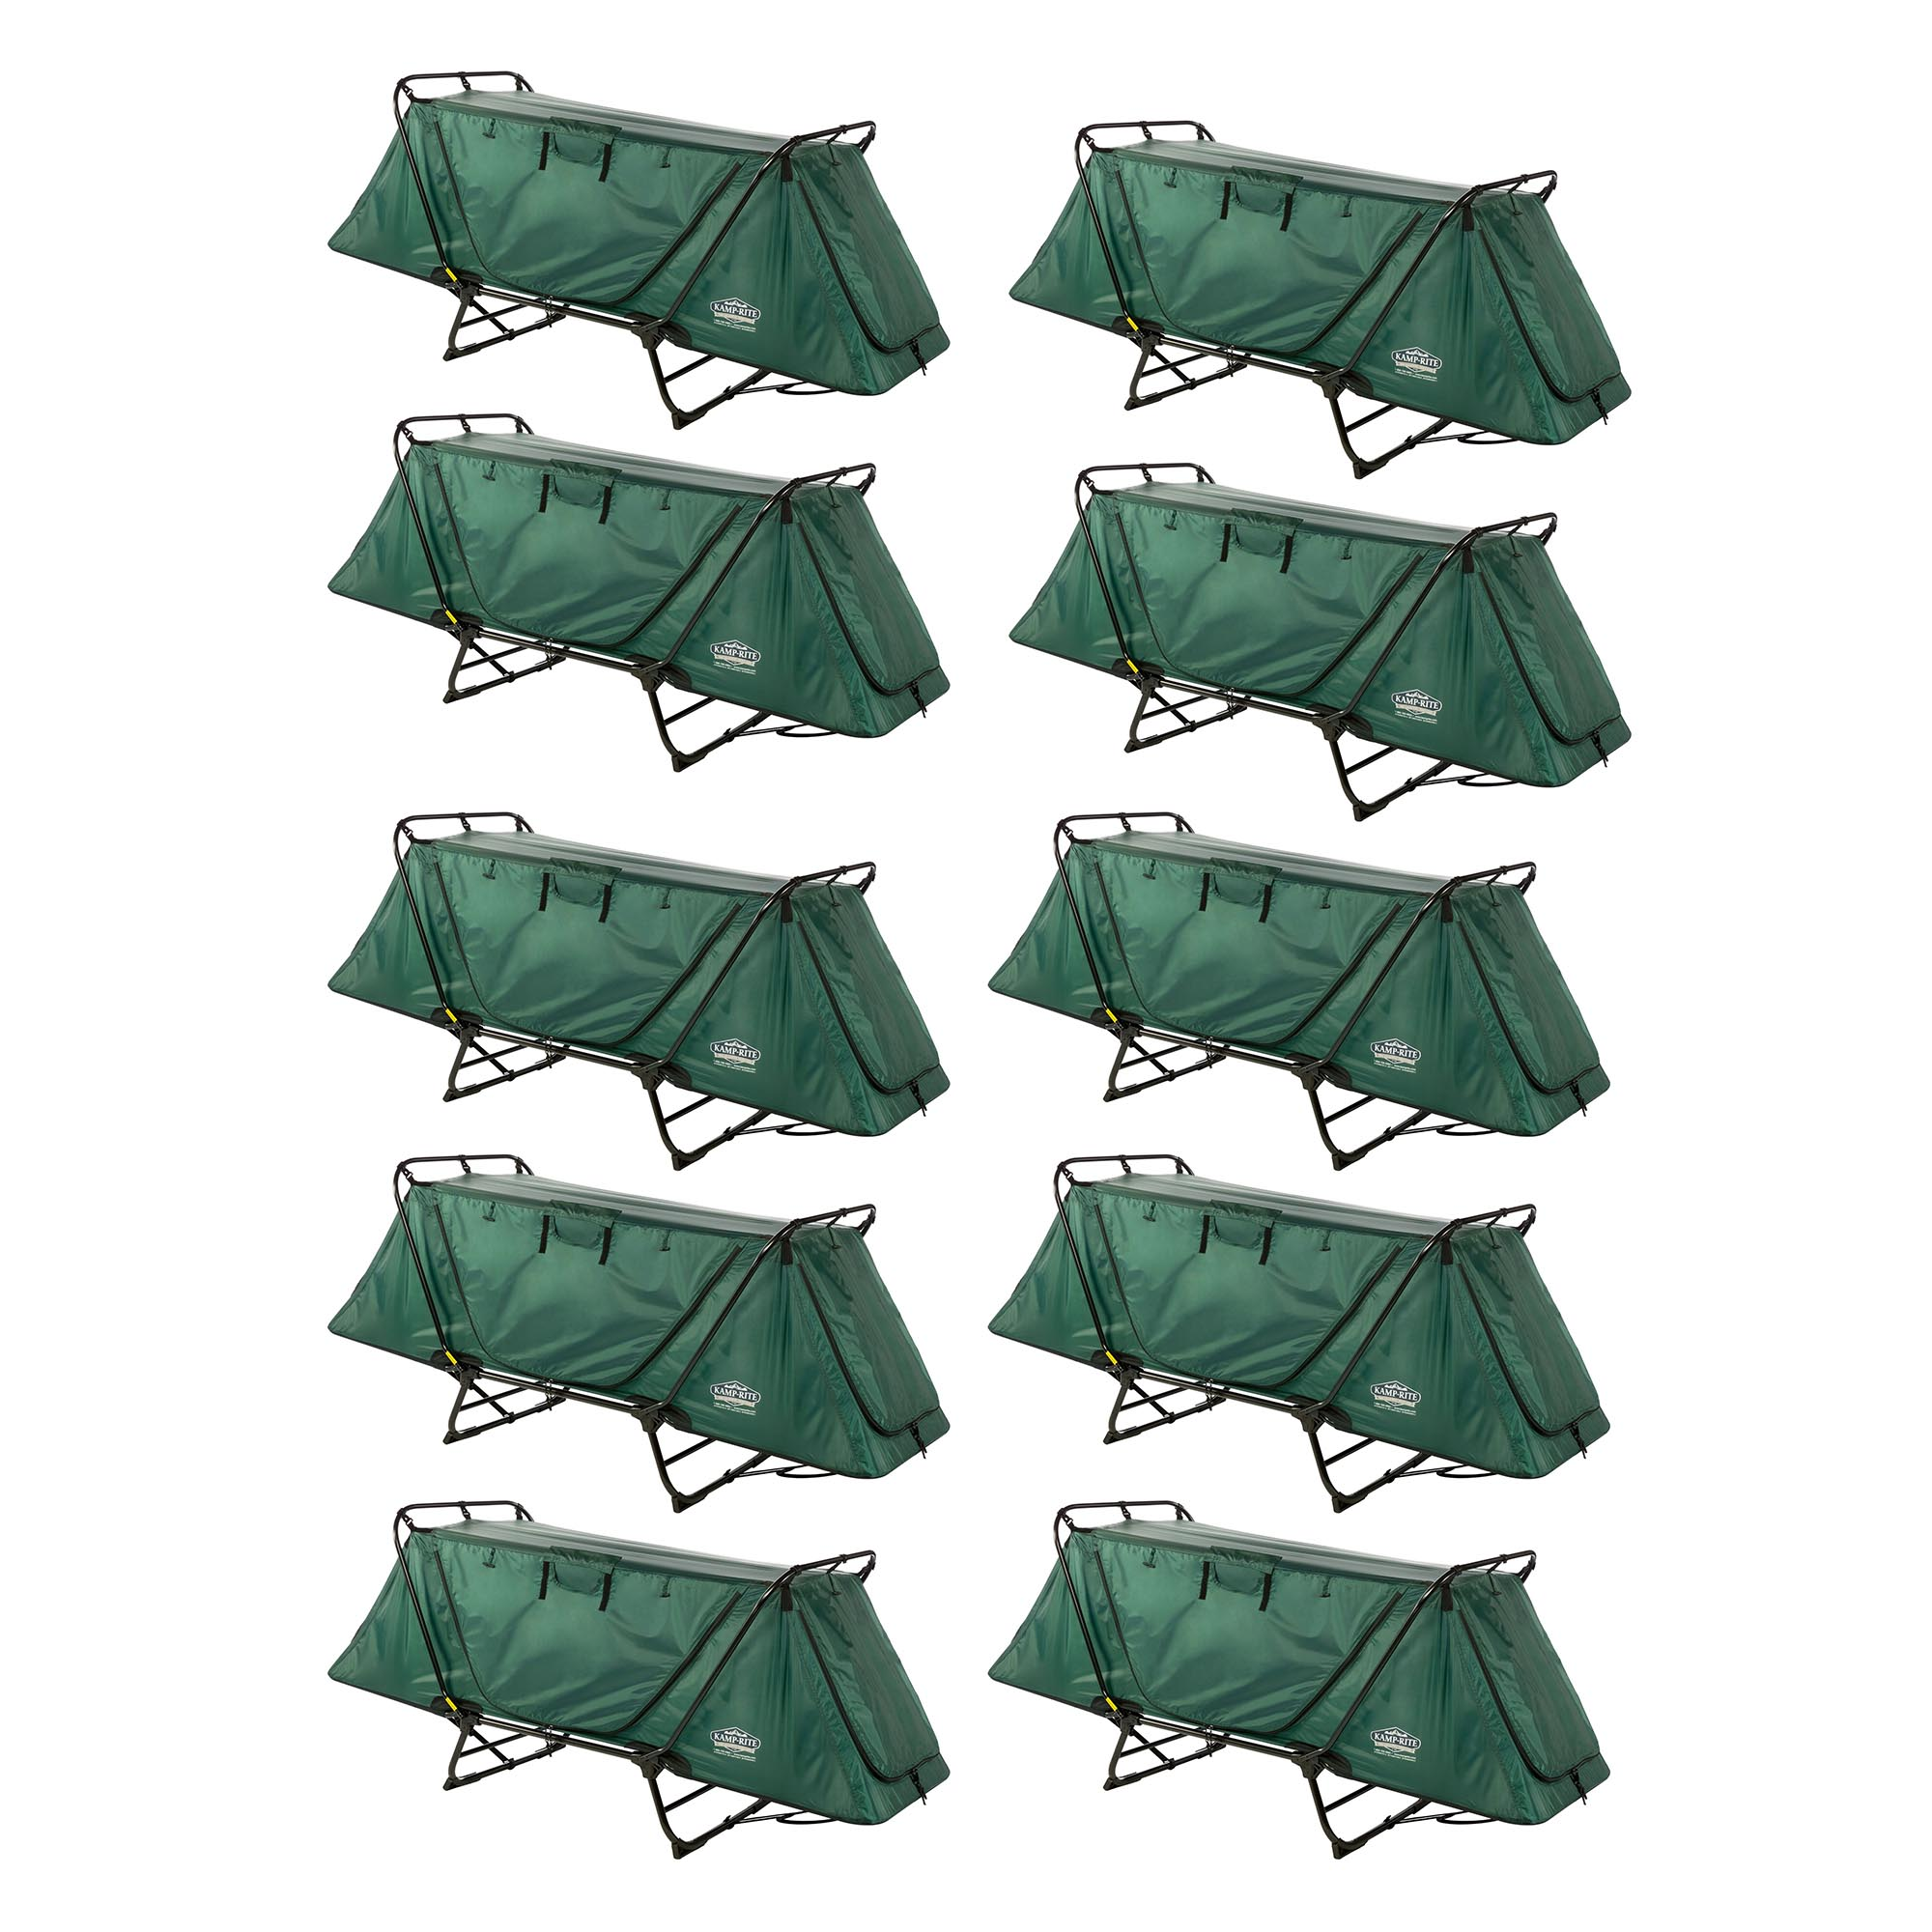 Kamp-Rite Original Tent Cot Folding 1 Person Camping & Hiking Bed (10 Pack)